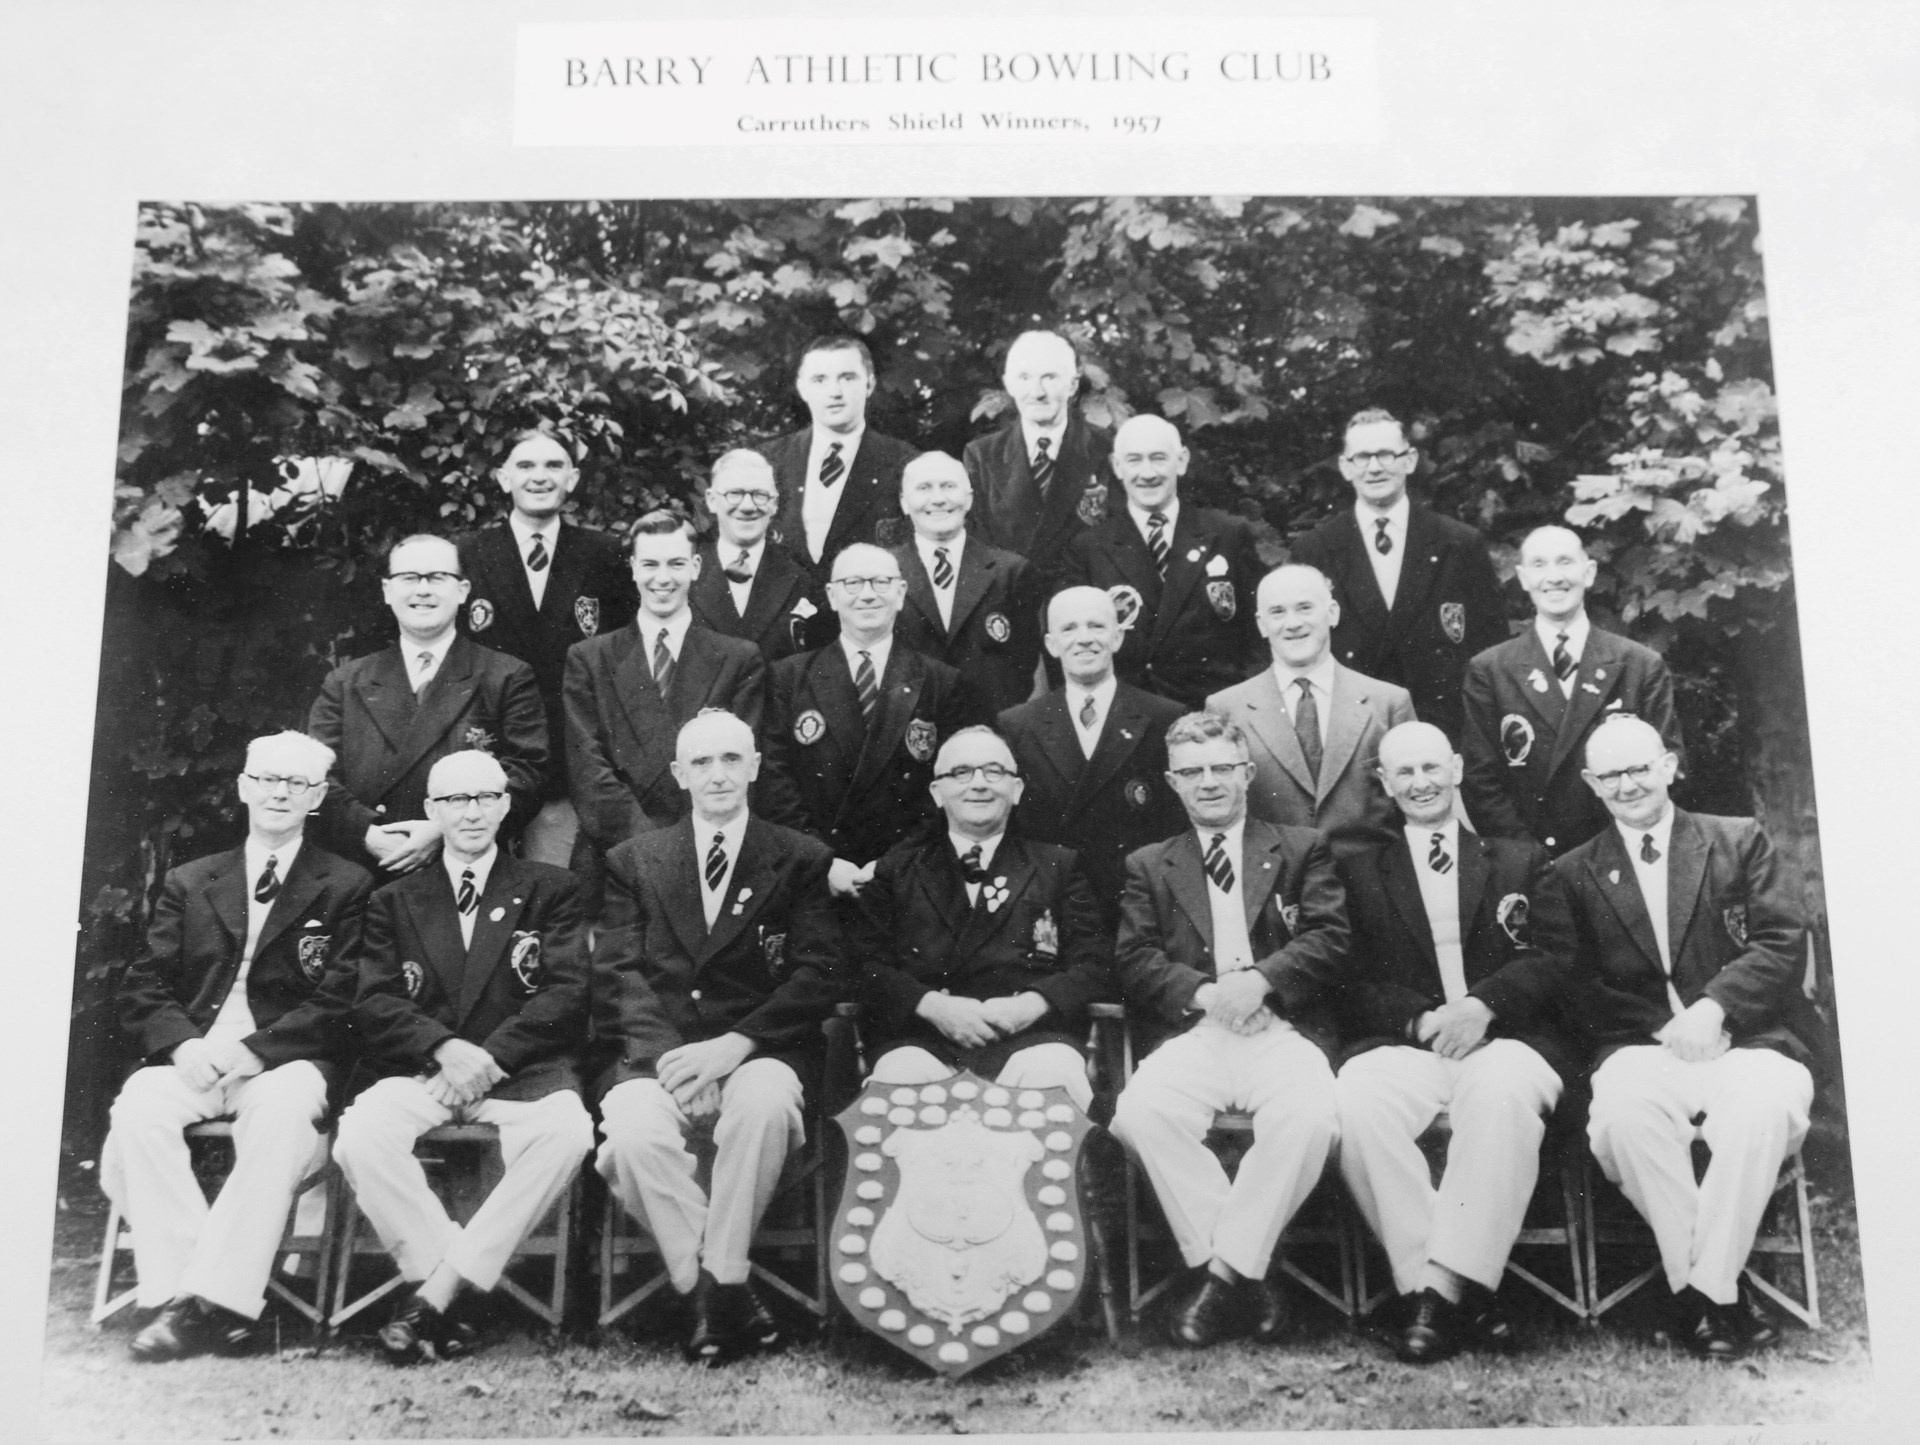 Caruthers Shield Winners 1957